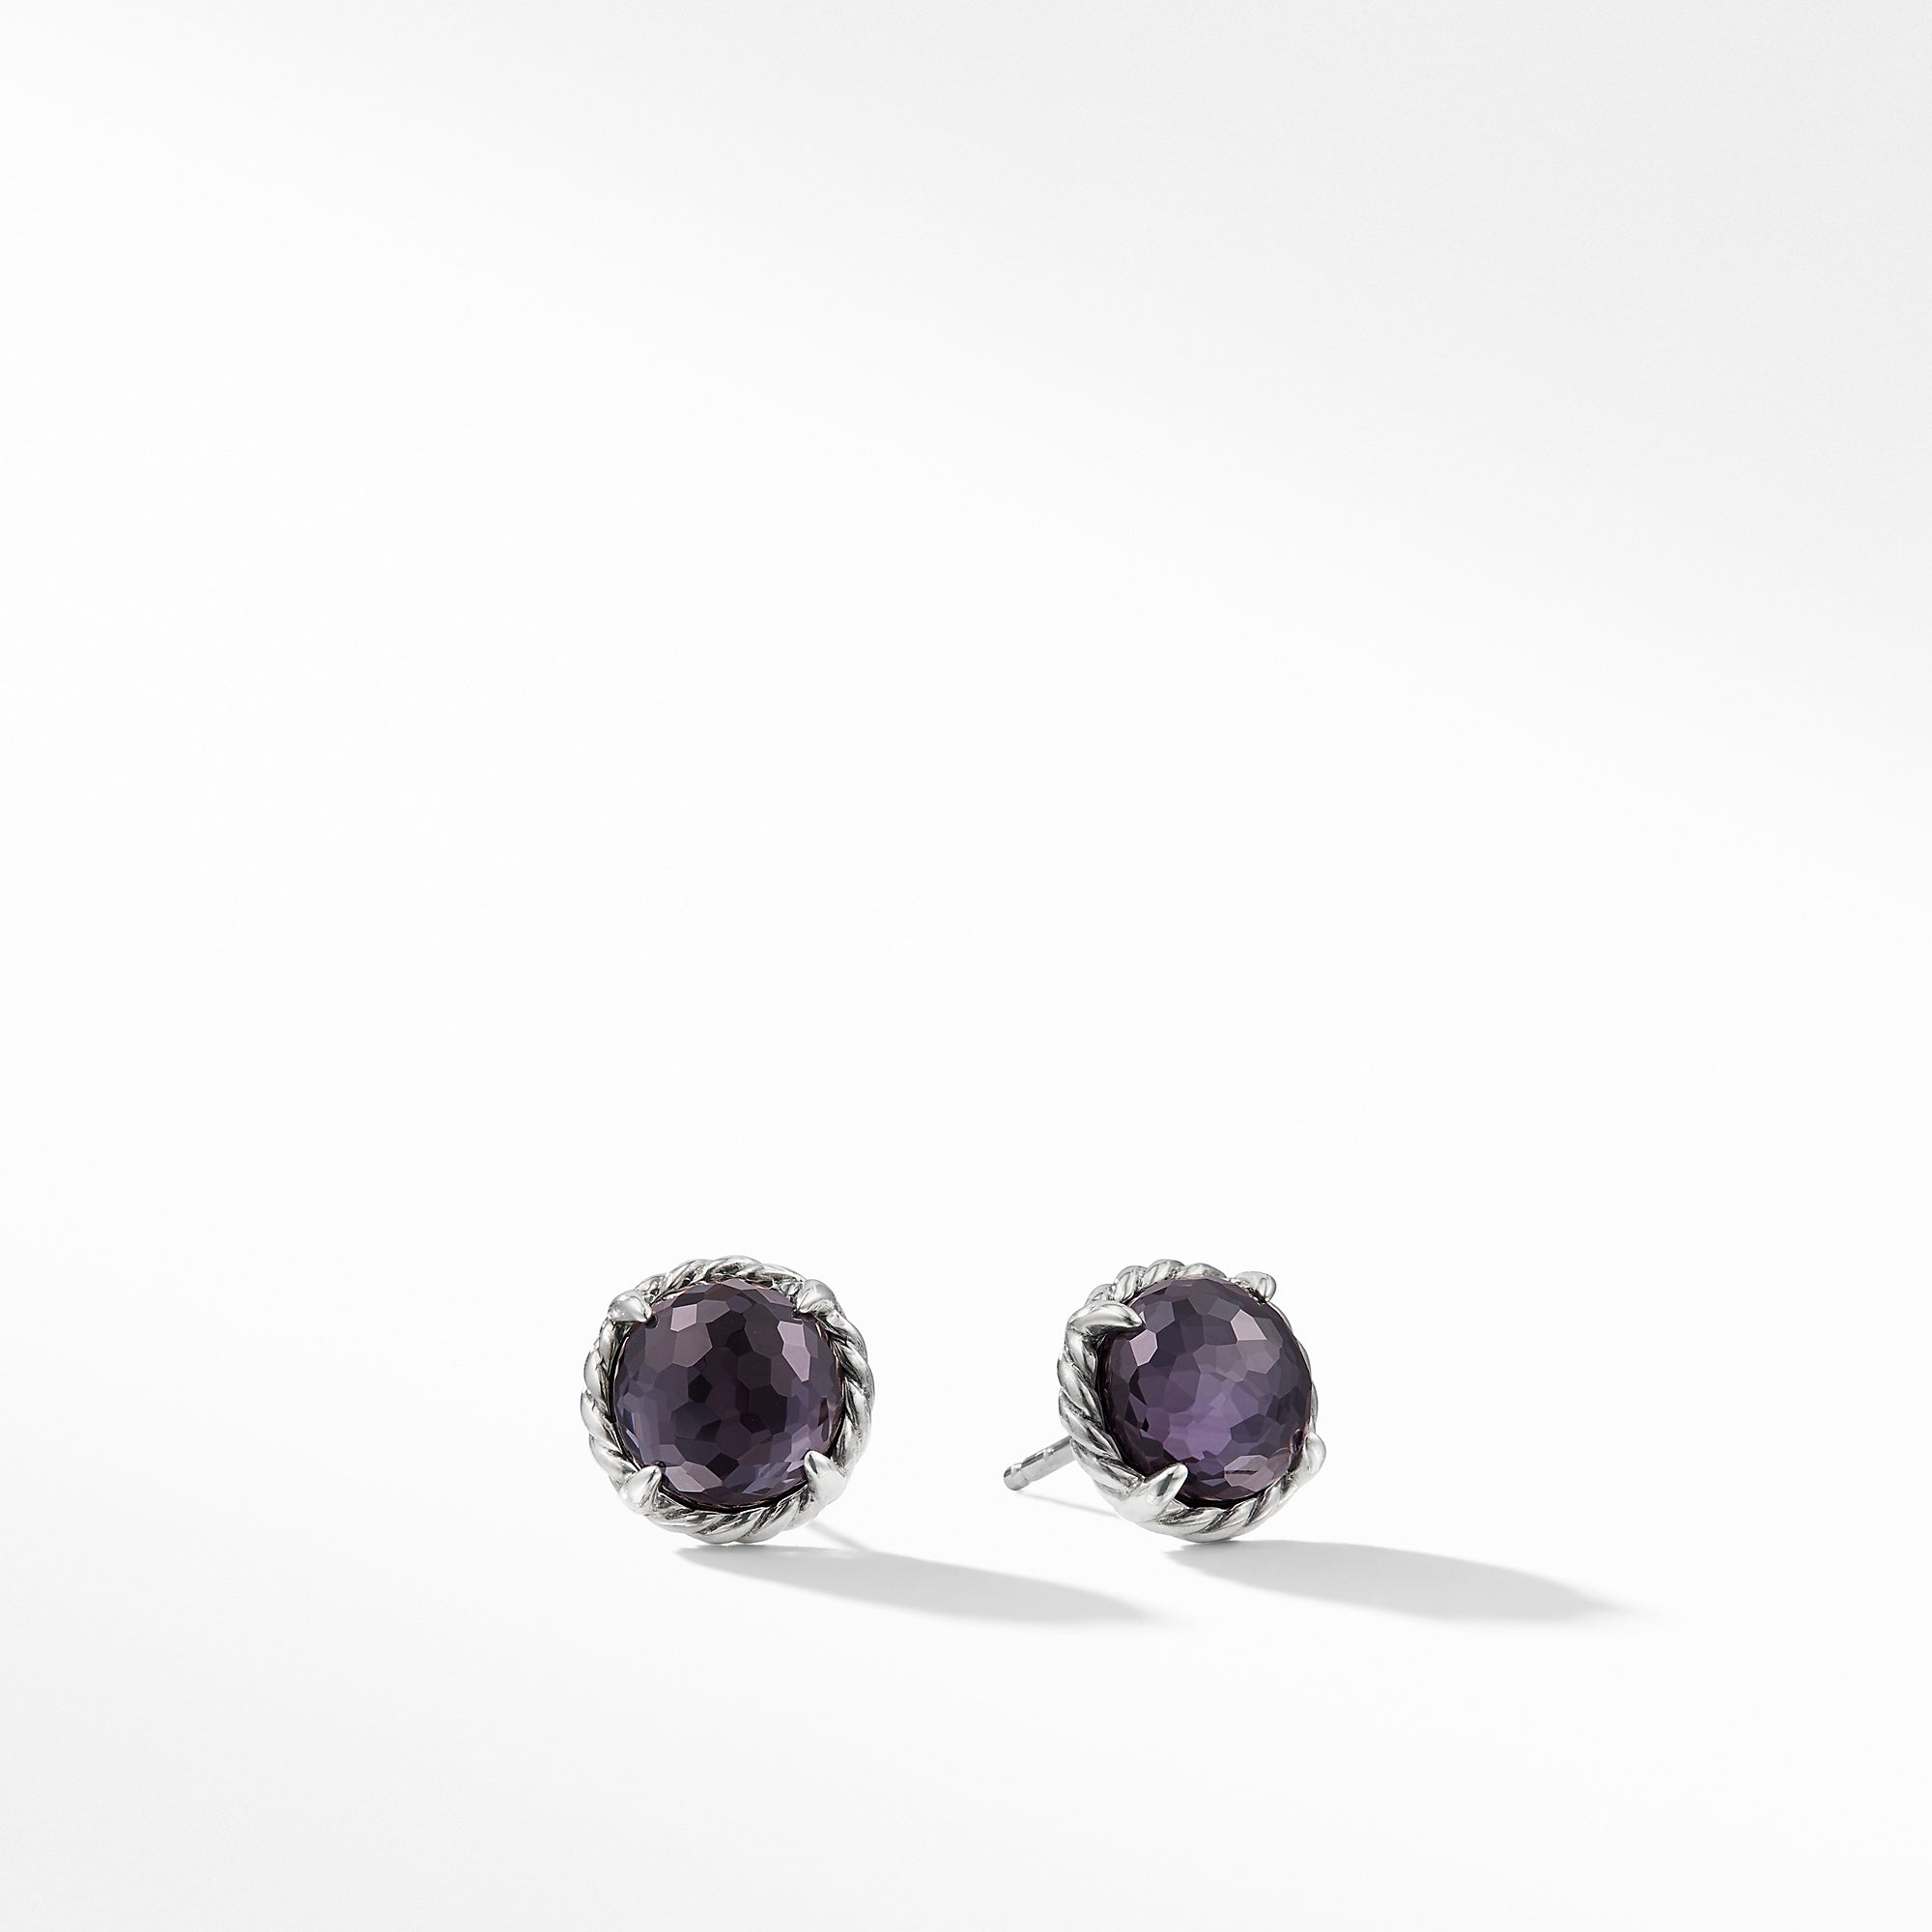 Earrings with Black Orchid